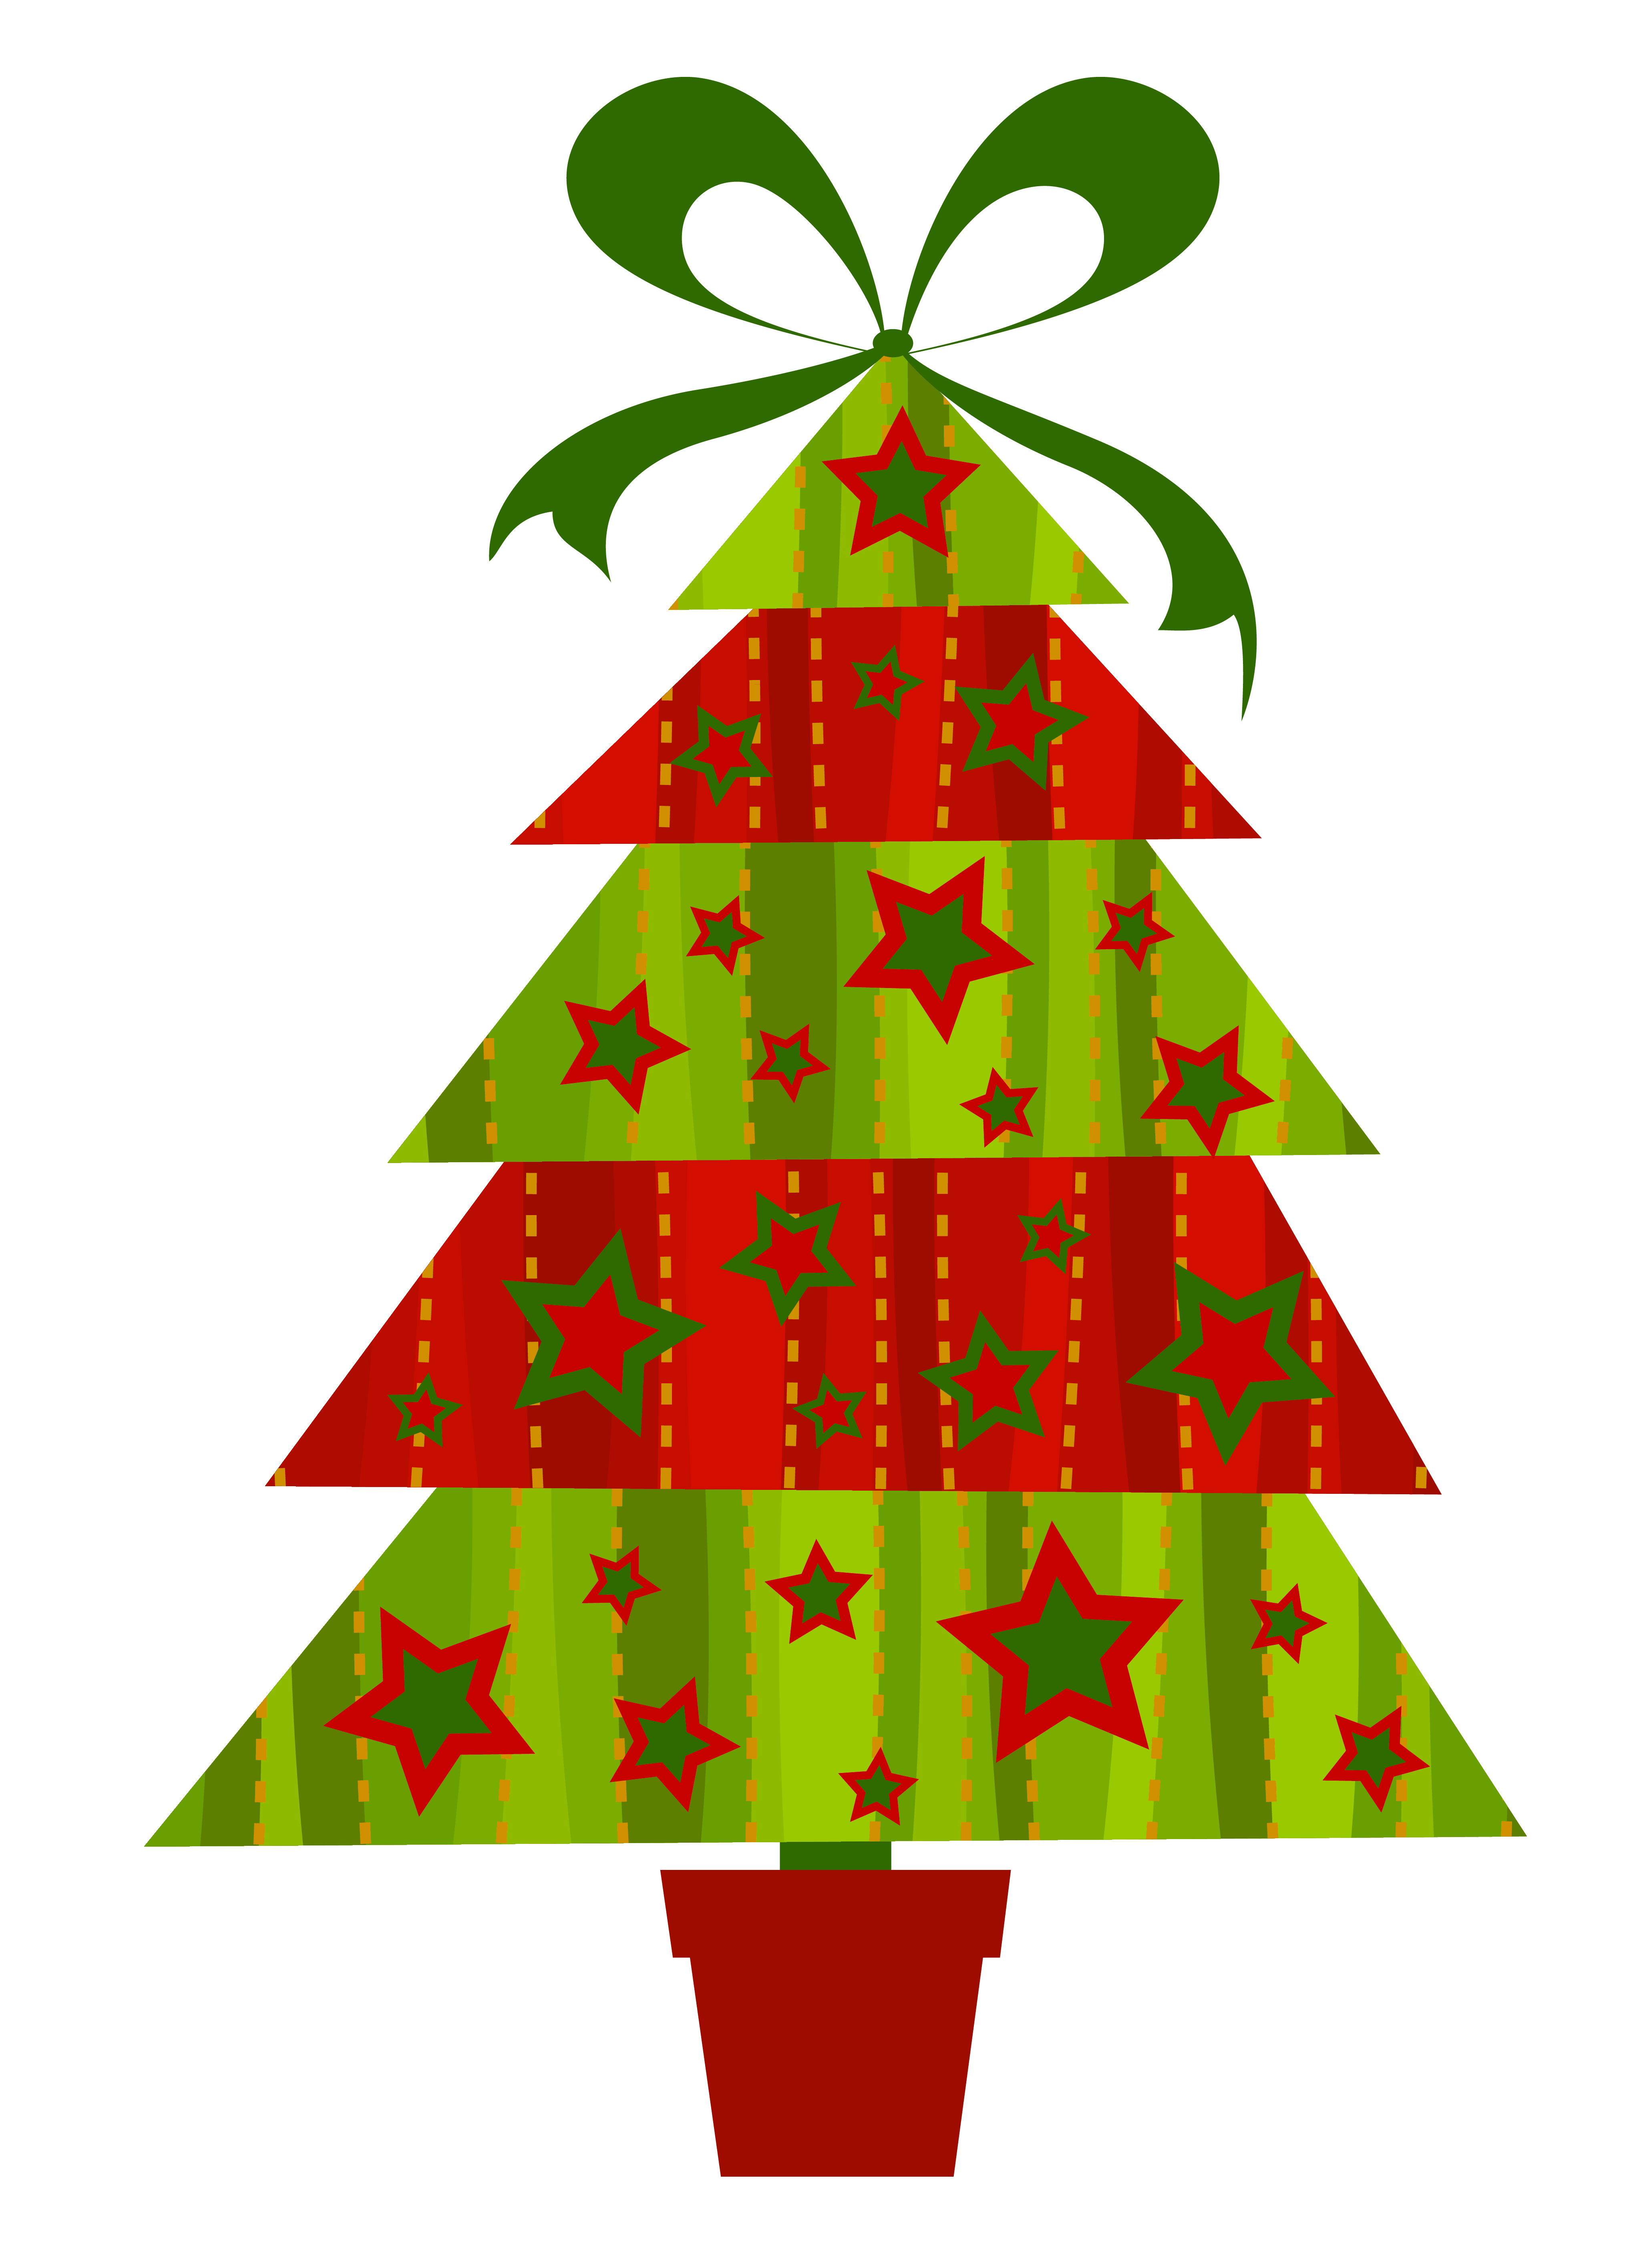 Christmas tree image clipart jpg freeuse library Free christmas clipart png - ClipartFest jpg freeuse library